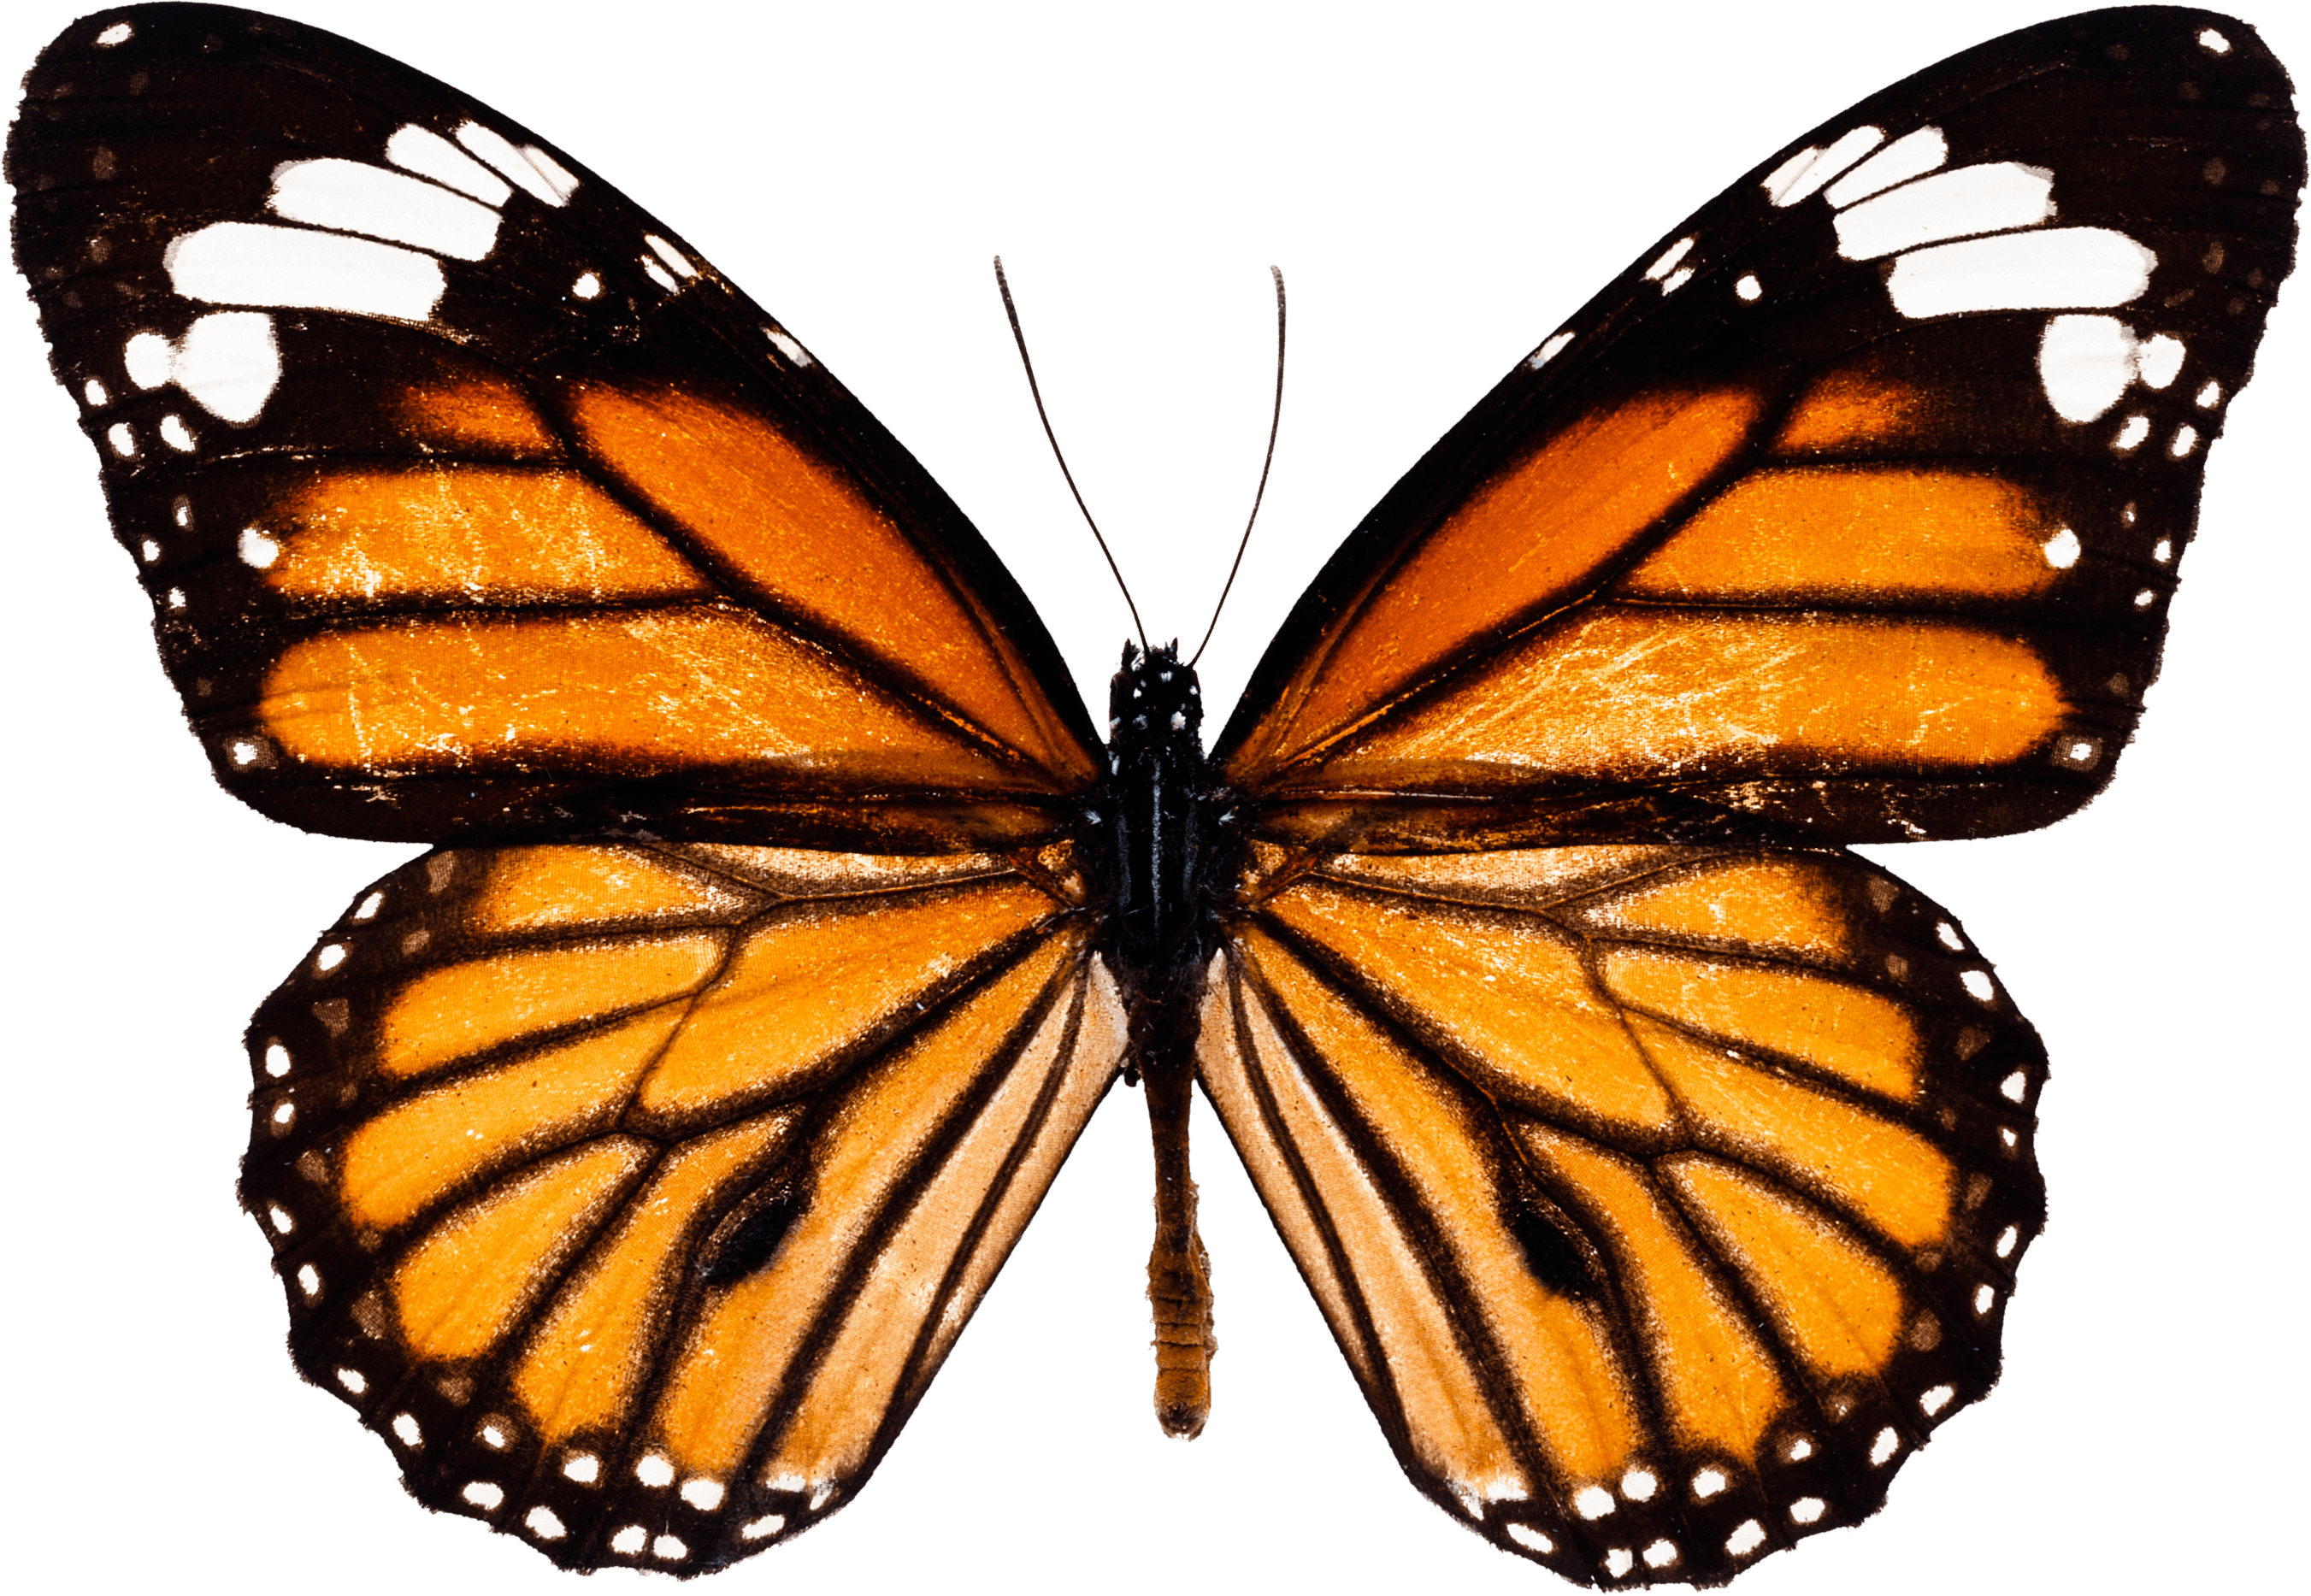 Download Butterfly Png Image HQ PNG Image | FreePNGImg